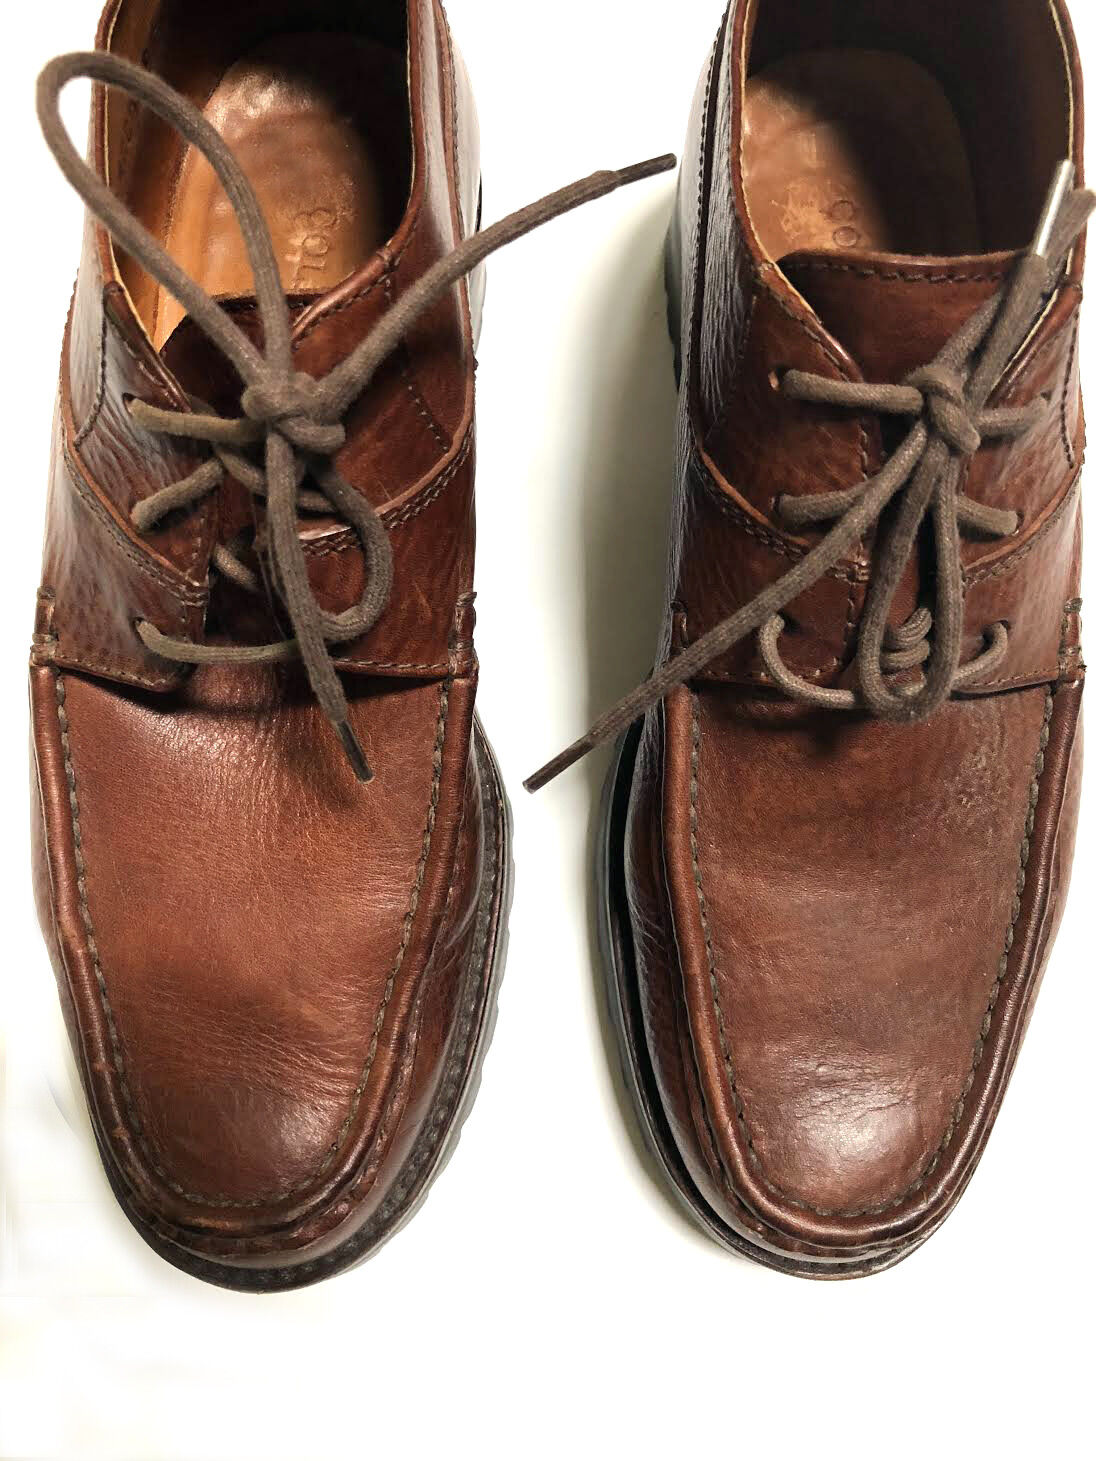 Cole Haan saddle Leder vibram rubber sturdy walking schuhe lace up oxfords 7N